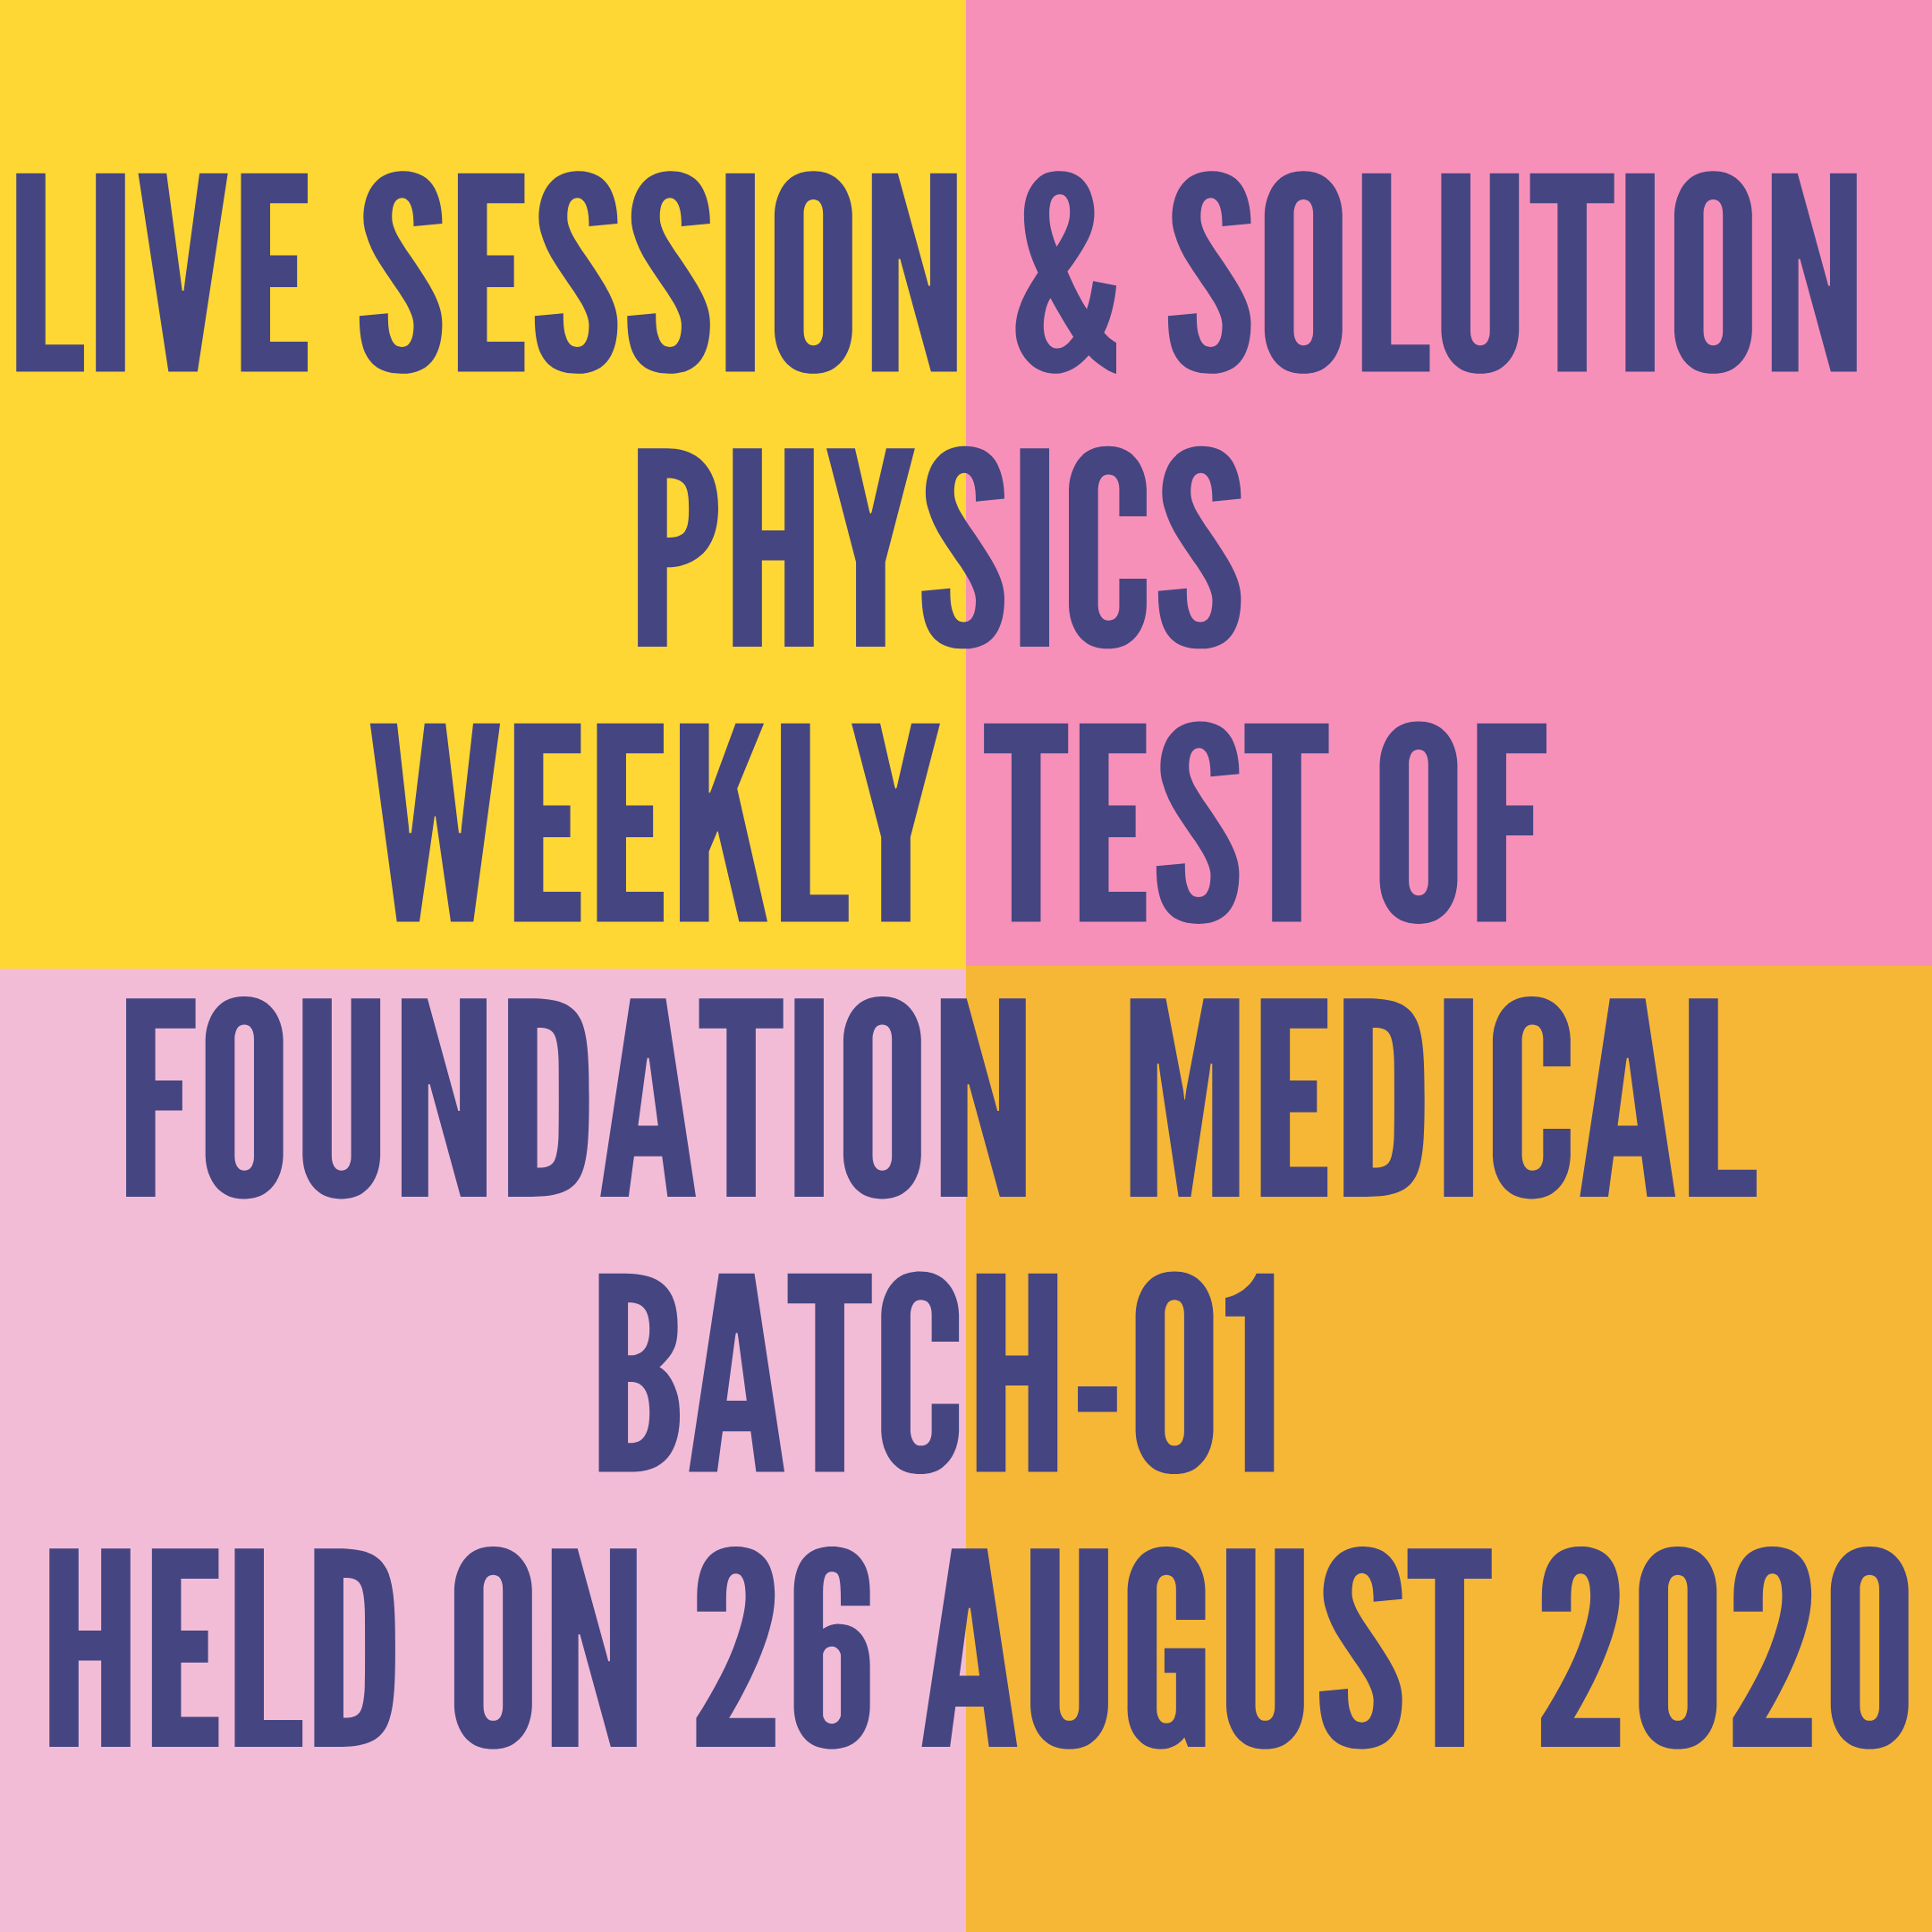 LIVE SESSION & SOLUTION PHYSICS WEEKLY TEST OF FOUNDATION  MEDICAL BATCH-01  HELD ON 26 AUGUST 2020